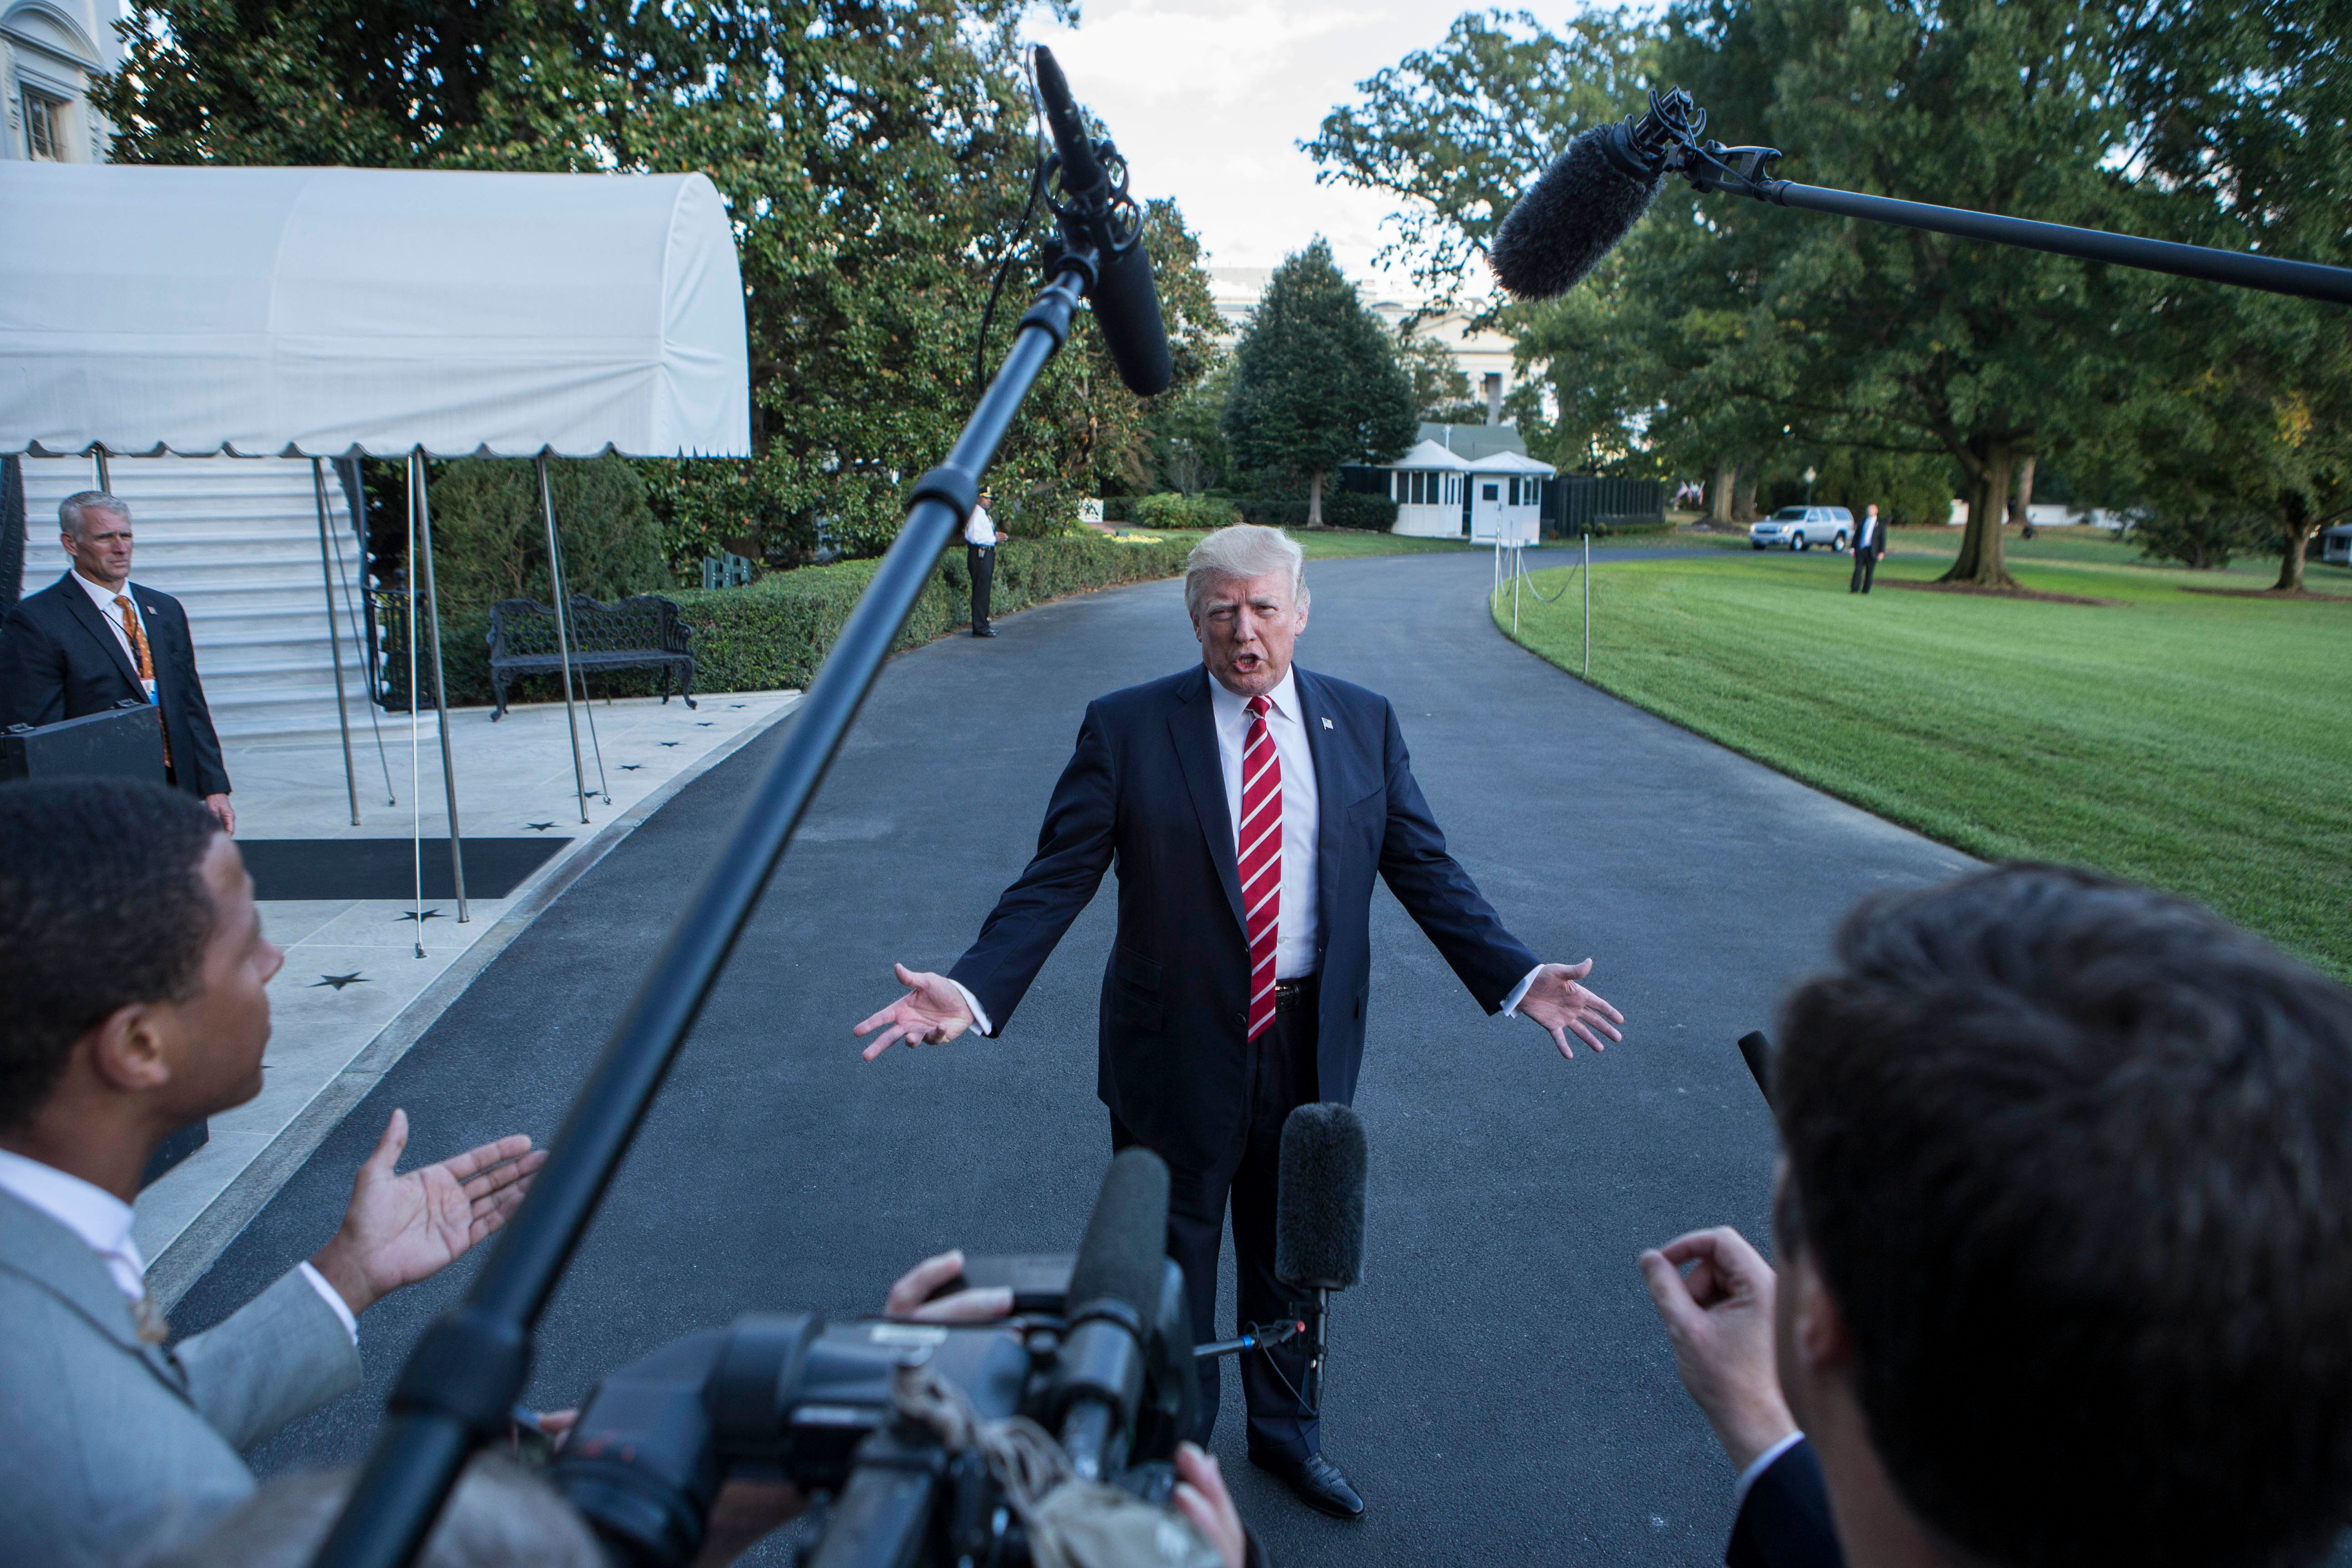 US President Donald Trump speaks with reporters outside the White House prior to his departure aboard Marine One on October 7, 2017.  During the exchange, President Trump called NBC News, 'Fake News' after the news agency reported tension between Trump and US Secretary of State Rex Rex Tillerson. The President will travel to Greensboro, North Carolina this evening to participate in a roundtable discussion with Republican National Committee members. / AFP PHOTO / Alex EDELMAN        (Photo credit should read ALEX EDELMAN/AFP/Getty Images)